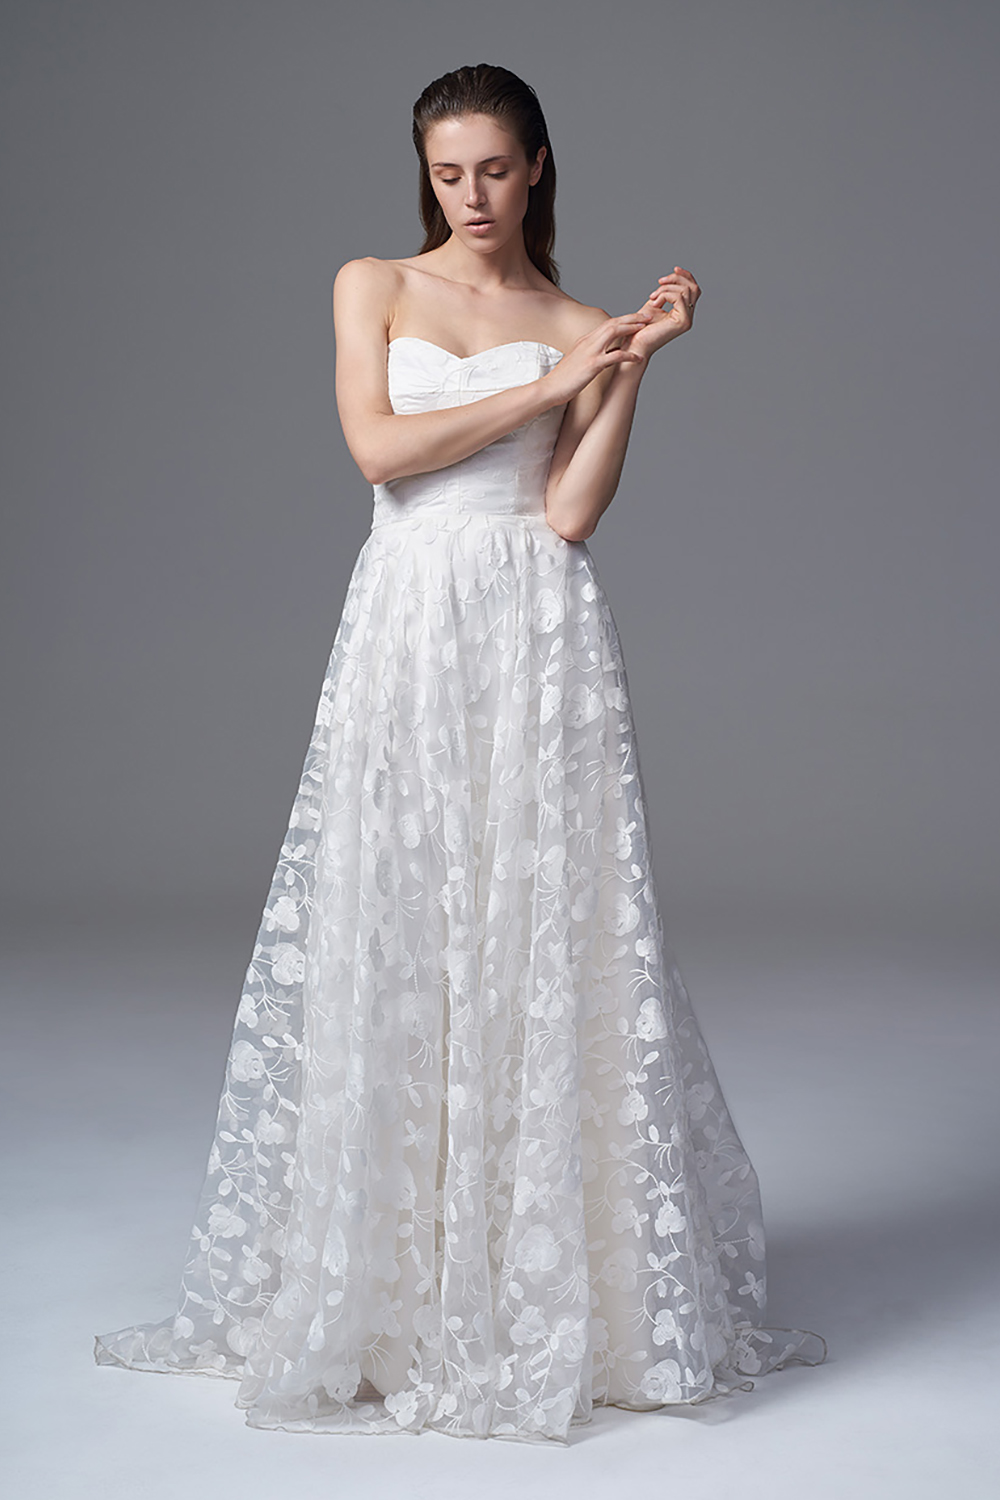 THE ESME STRAPLESS AND SOFT BONED SWEETHEART DRESS IN FULL EMBROIDERED ORGANZA. BRIDAL WEDDING DRESS BY HALFPENNY LONDON